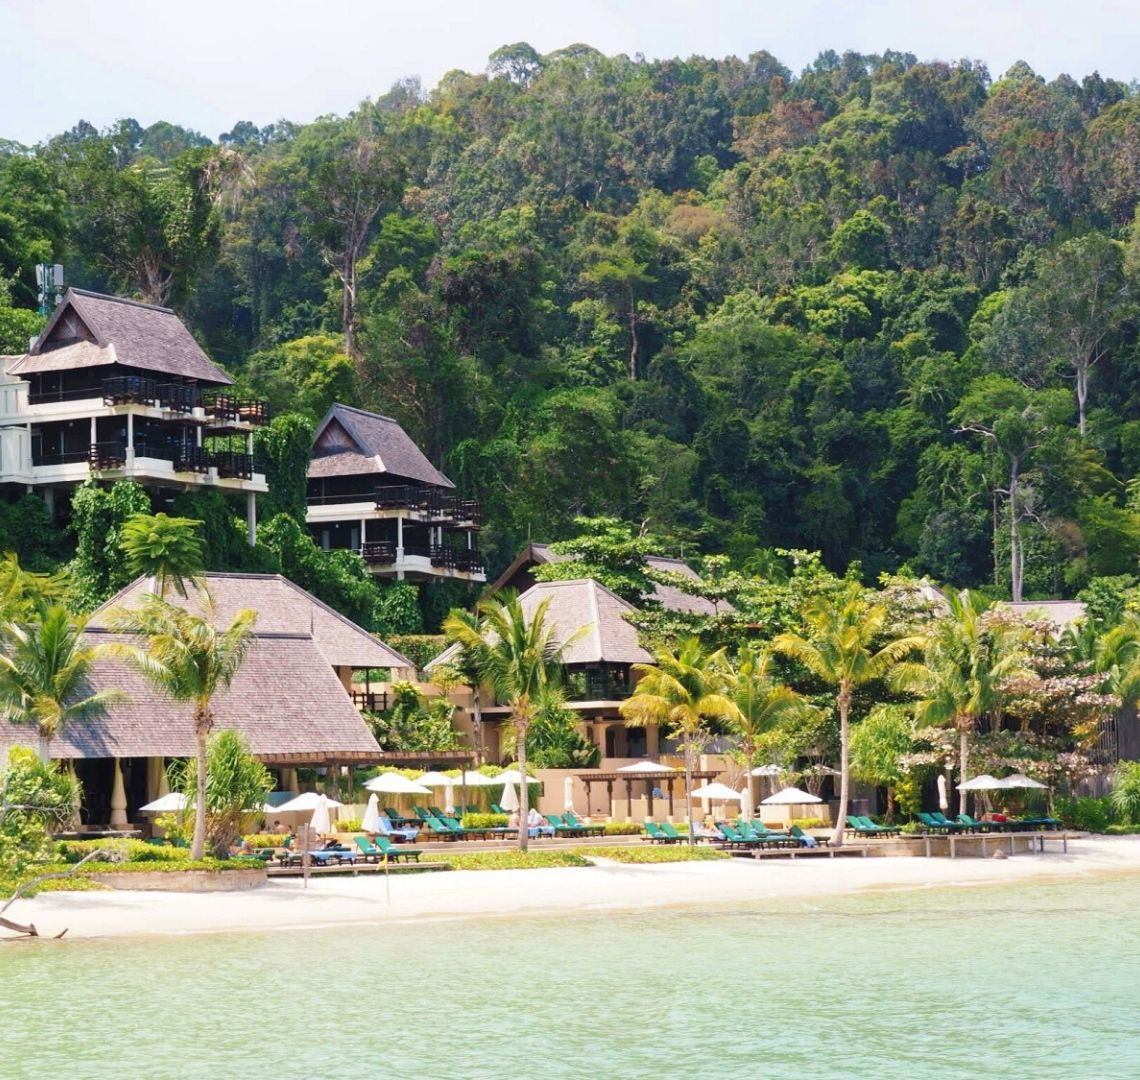 Best Secret Islands In Malaysia - Gaya Island Resort as viewed from the sea. The sea is a soft turquoise, then there is the beach with bright turquoise sun loungers neatly arranged under parasols. The main hotel buildings are behind and then, built into the hill you can you see some of the hotel rooms